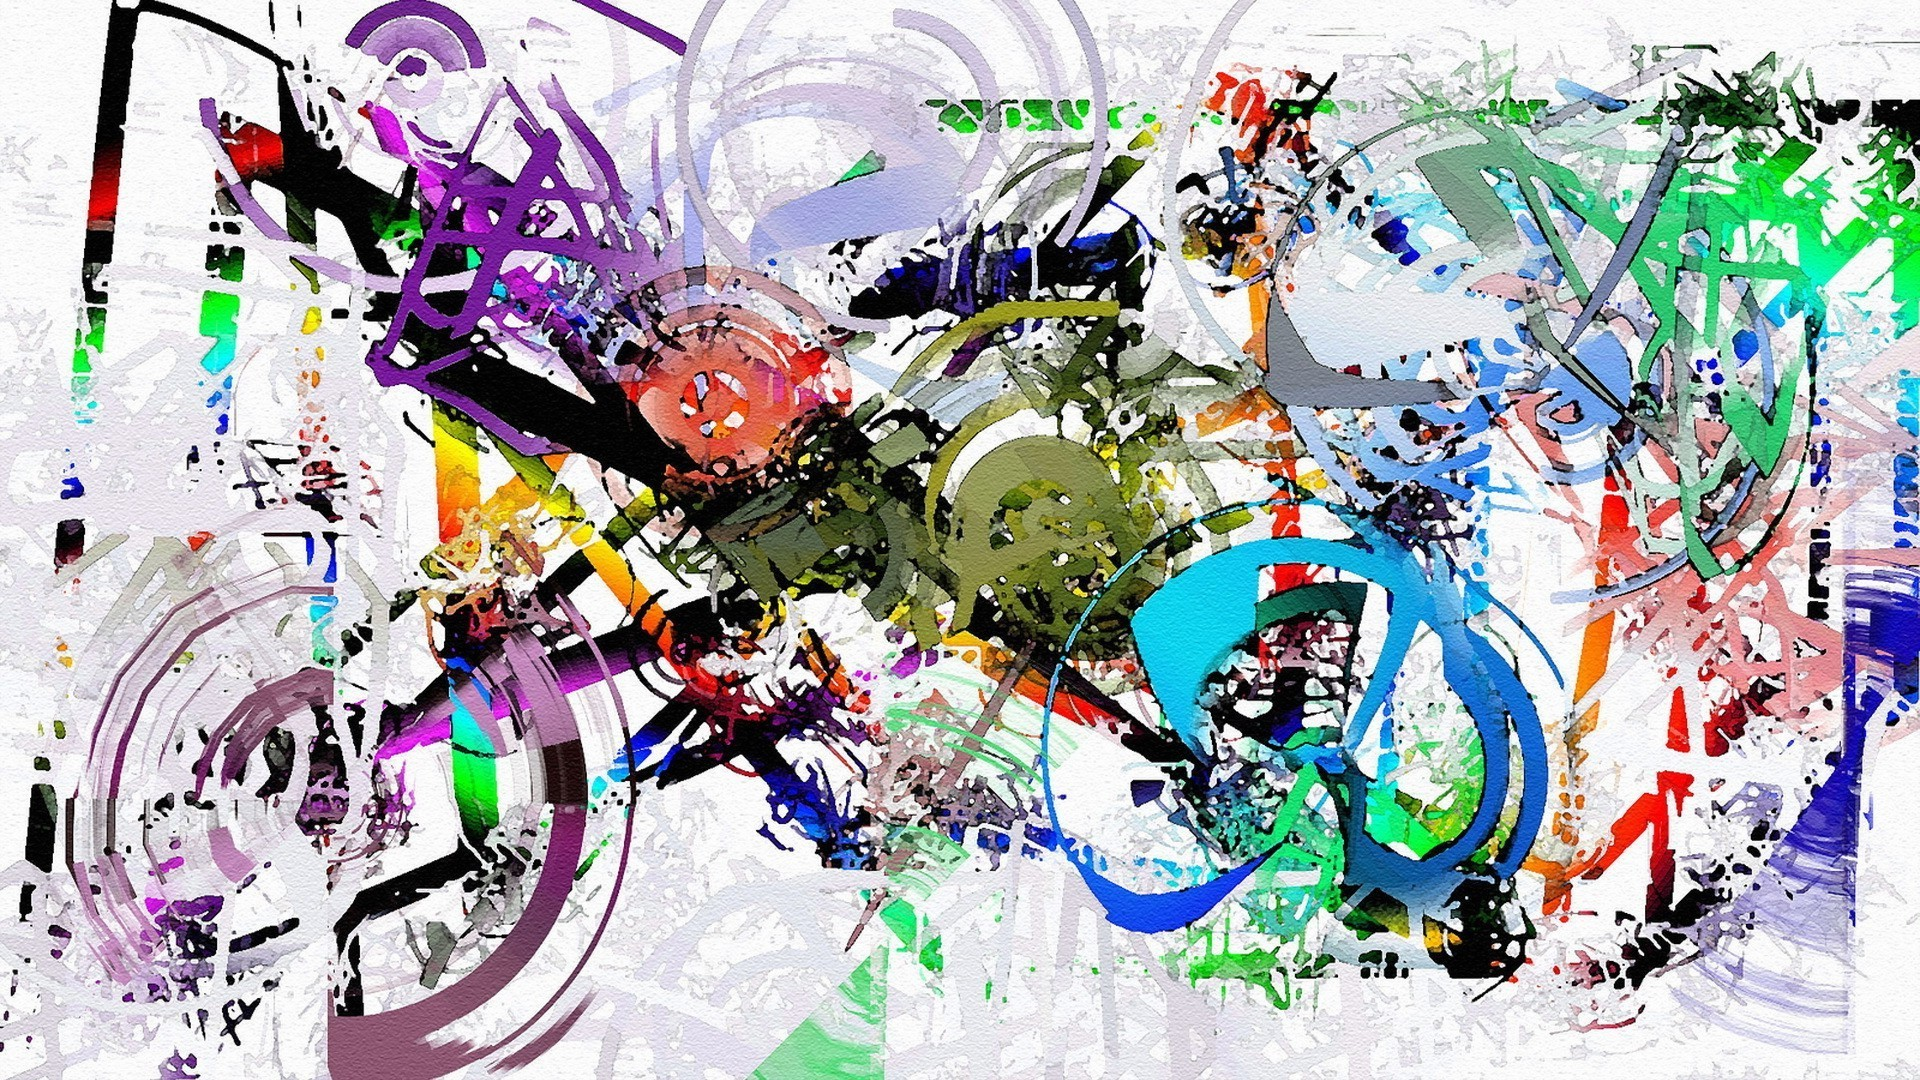 painting, Artwork, Abstract, Paint Splatter, Colorful, Motorcycle, Circle,  Lines, White Background Wallpapers HD / Desktop and Mobile Backgrounds